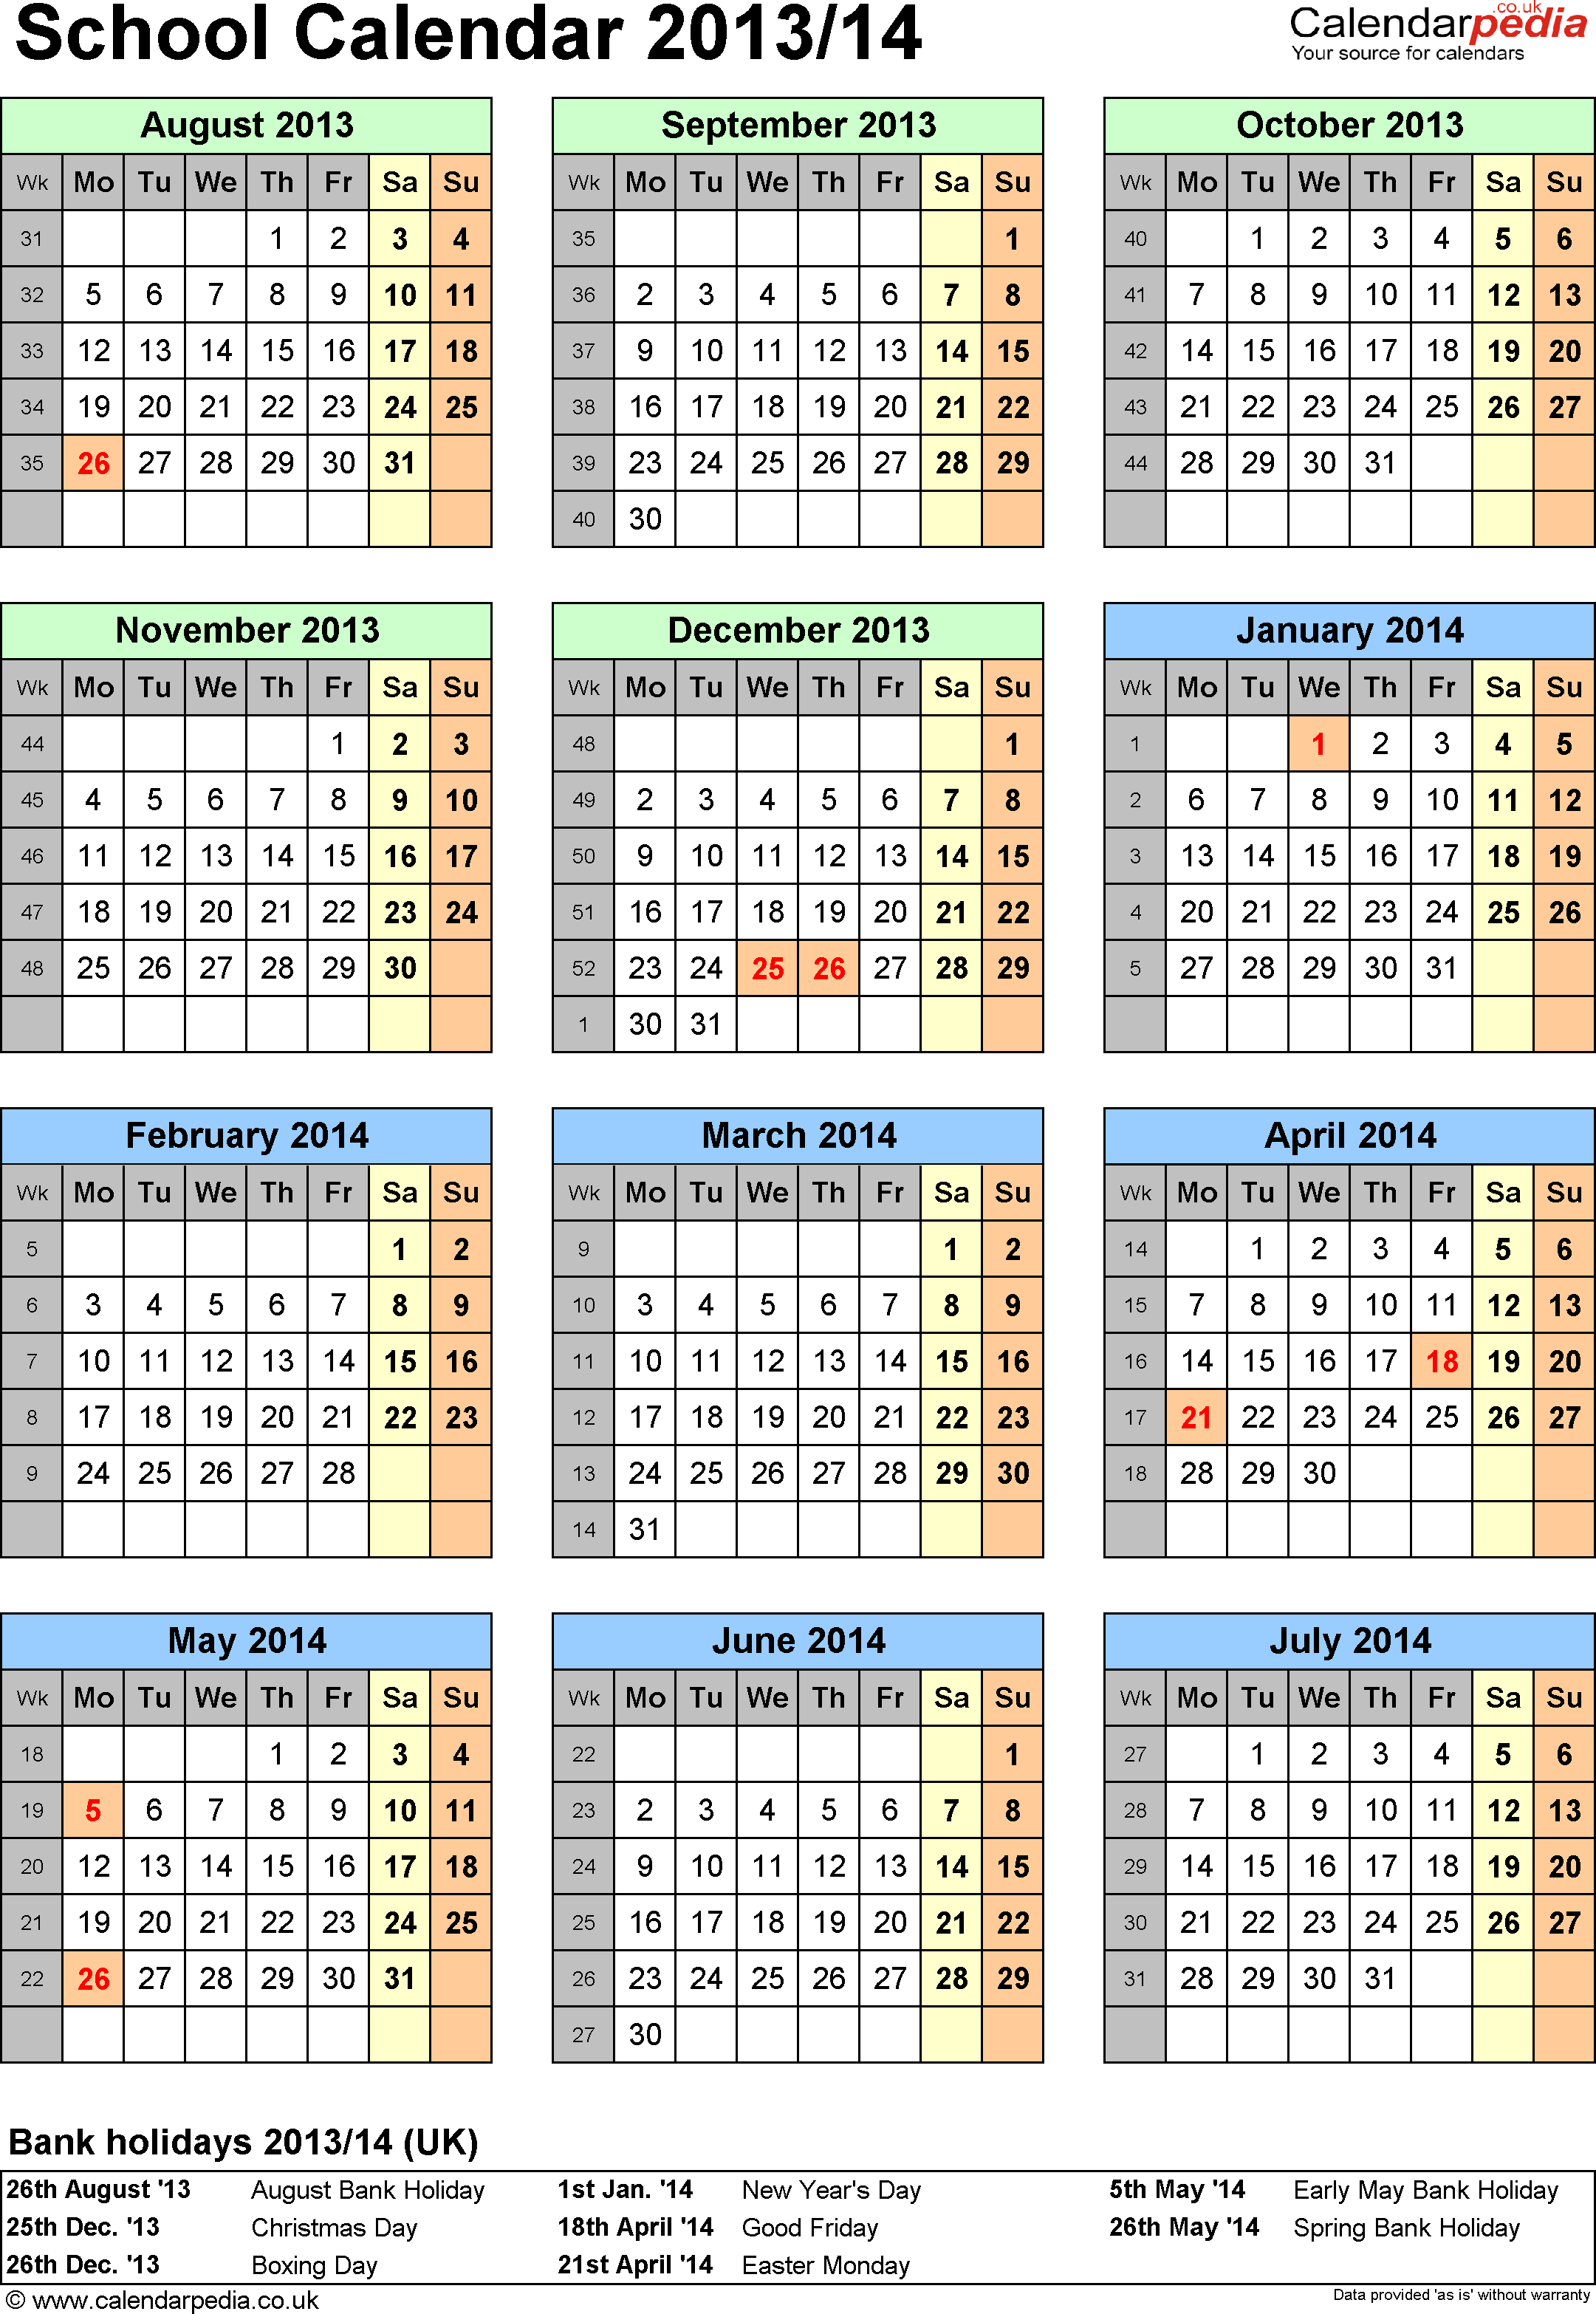 Template 5: School year calendars 2013/14 as PDF template, portrait orientation, one A4 page